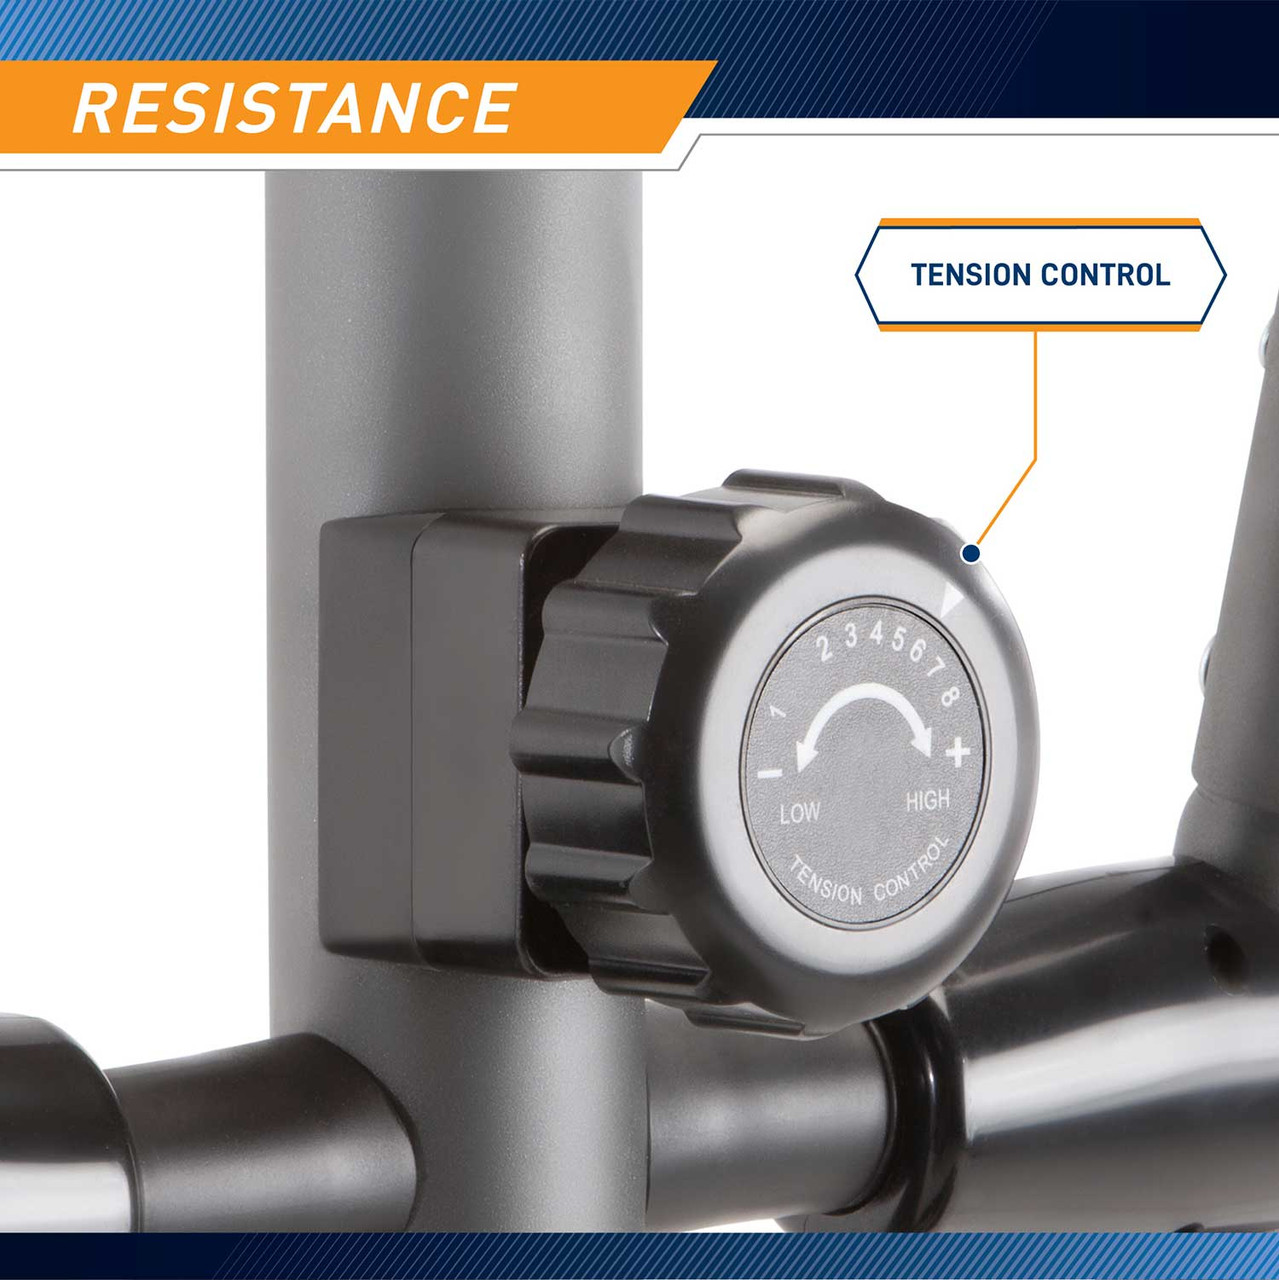 The Marcy NS-40501W Elliptical Trainer is easily adjustable using the resistance knob